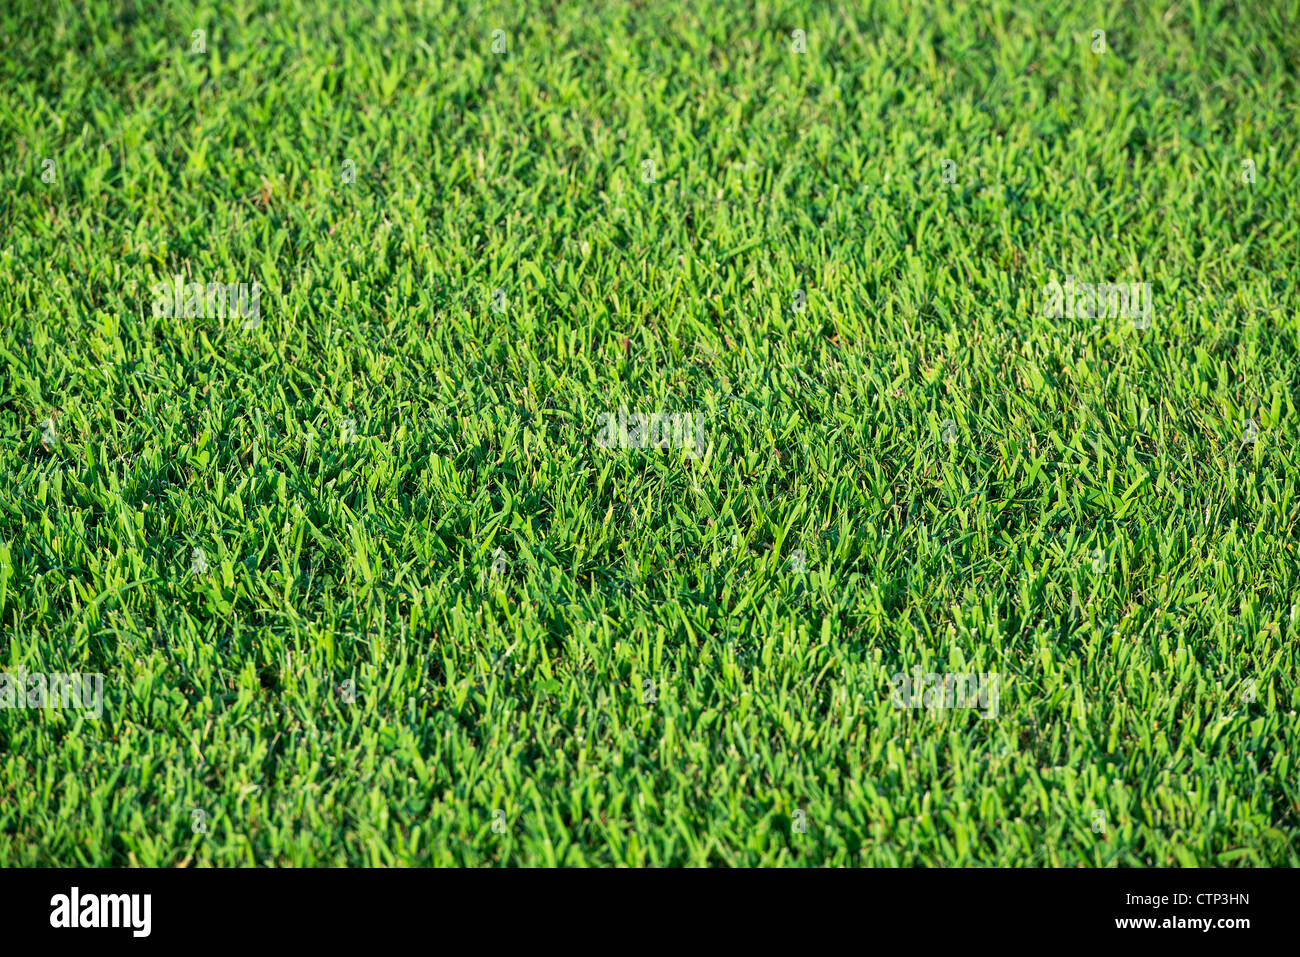 Sod being grown on a turf farm. - Stock Image